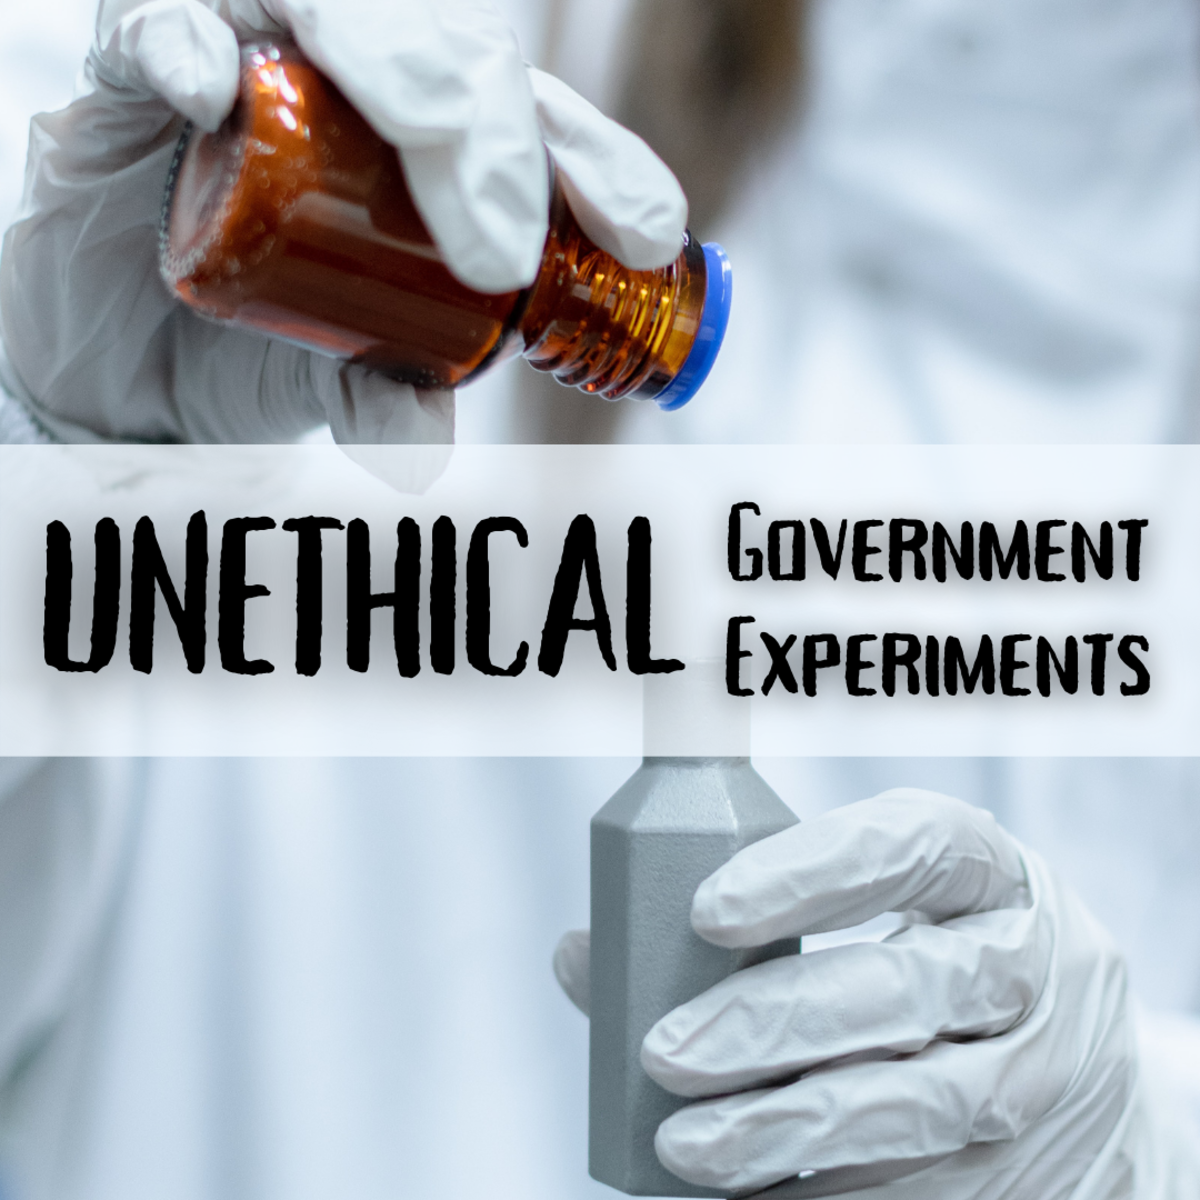 Learn about some unethical experiments that were authorized by the U.S. government in years past.